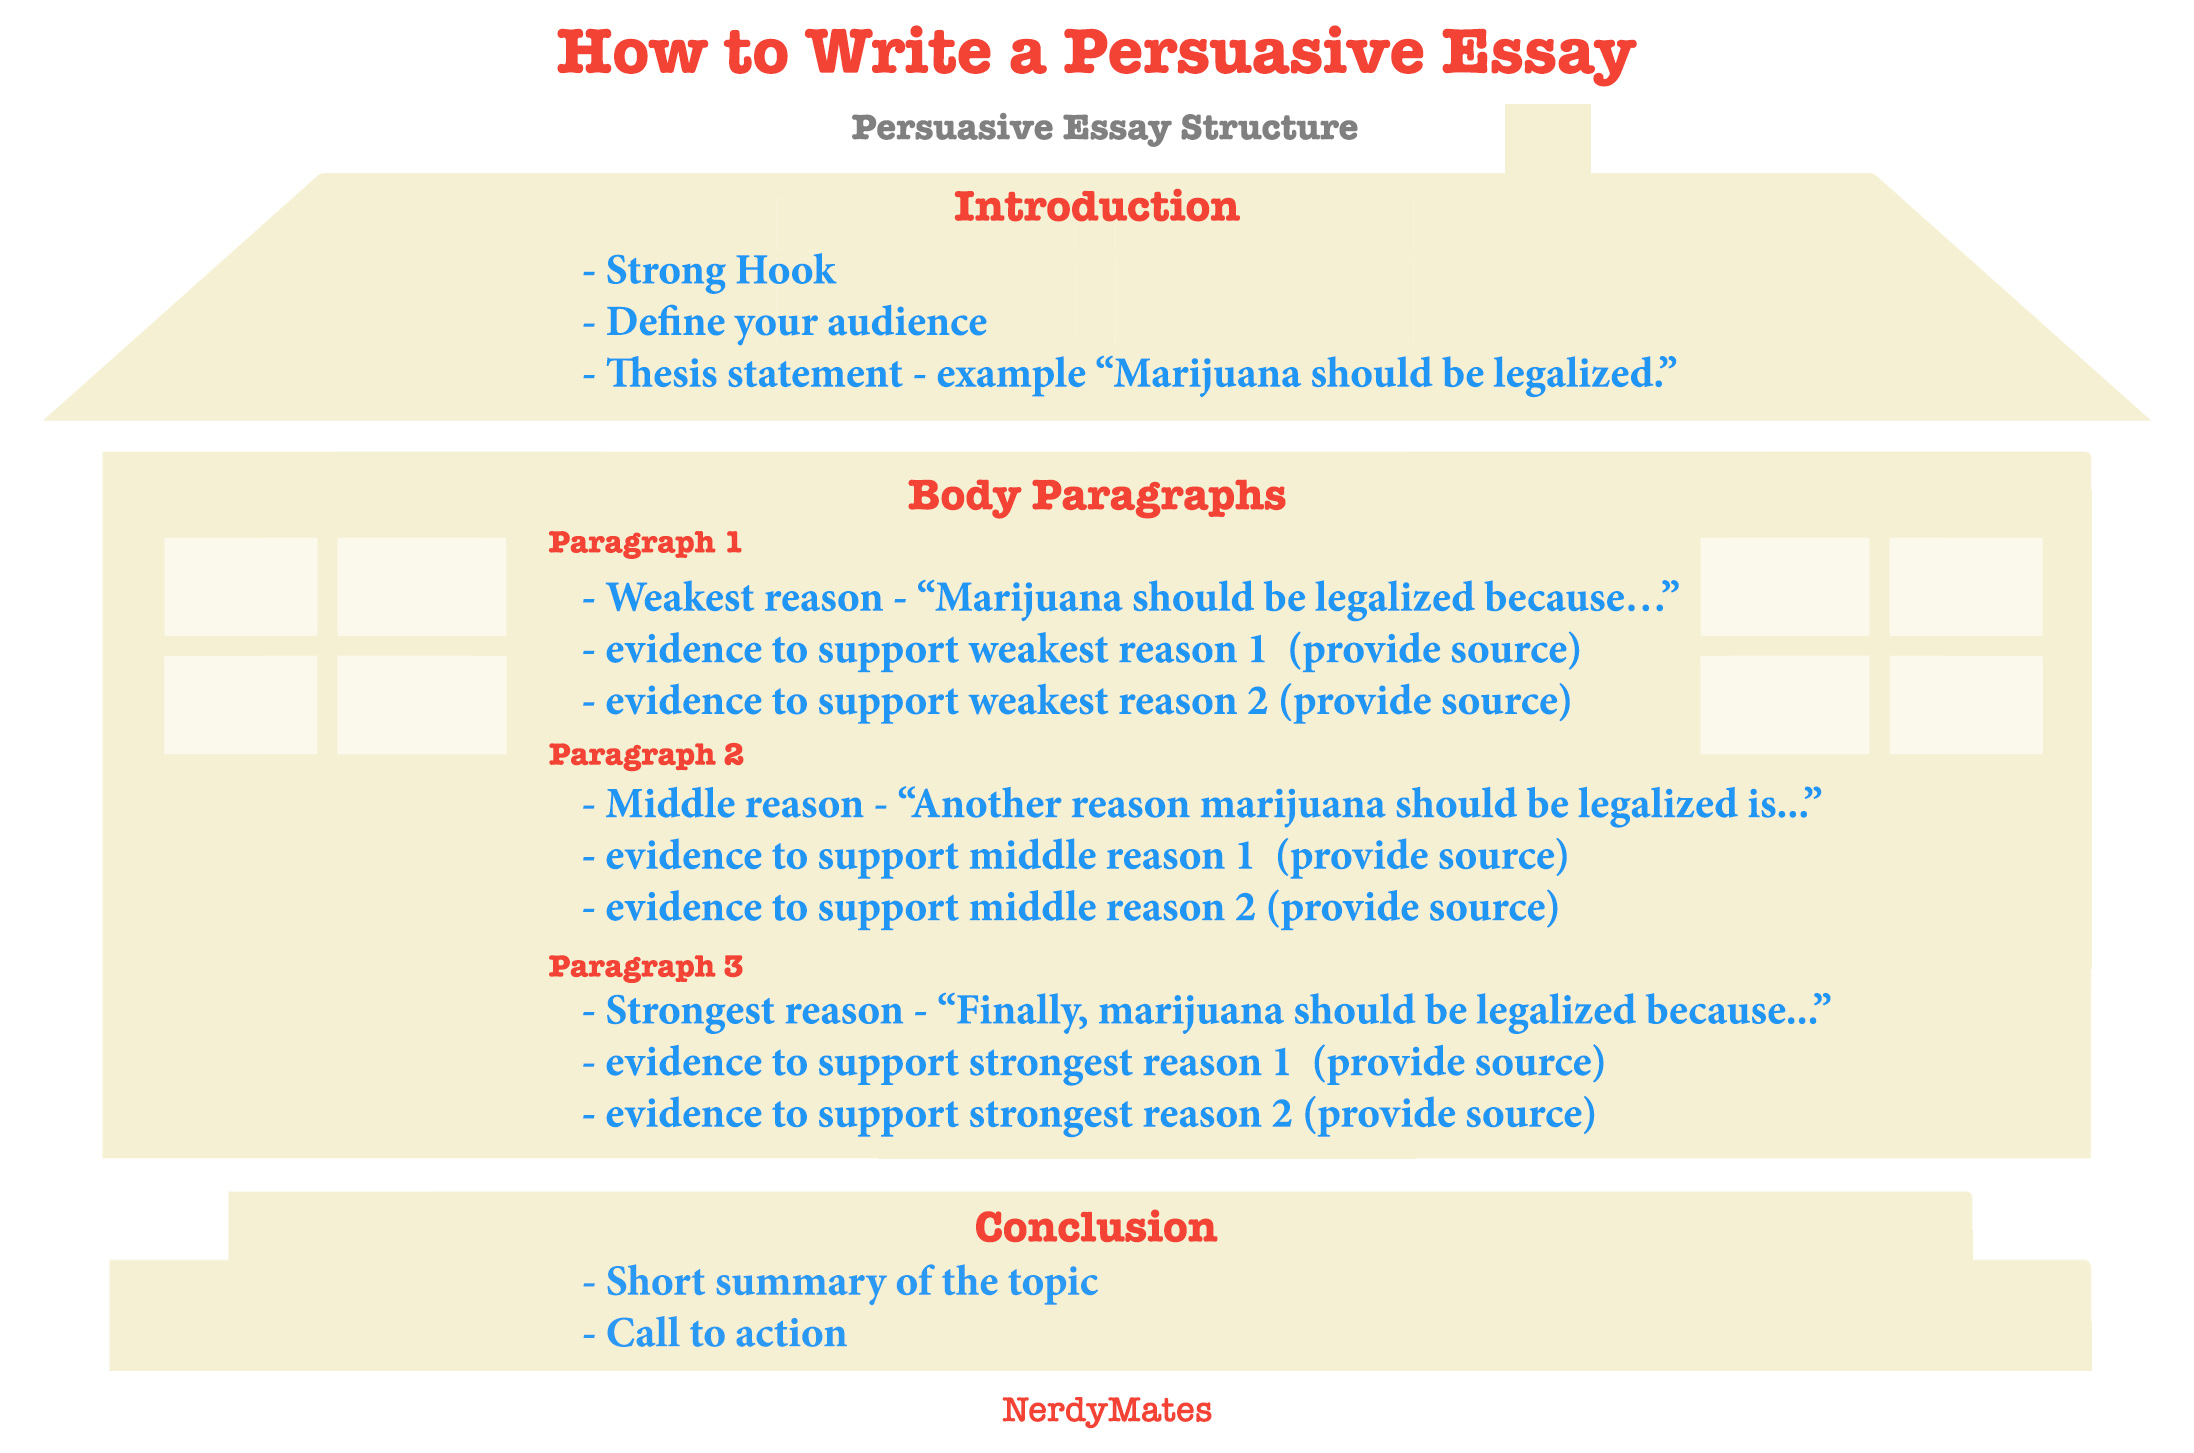 Structure of essay introduction